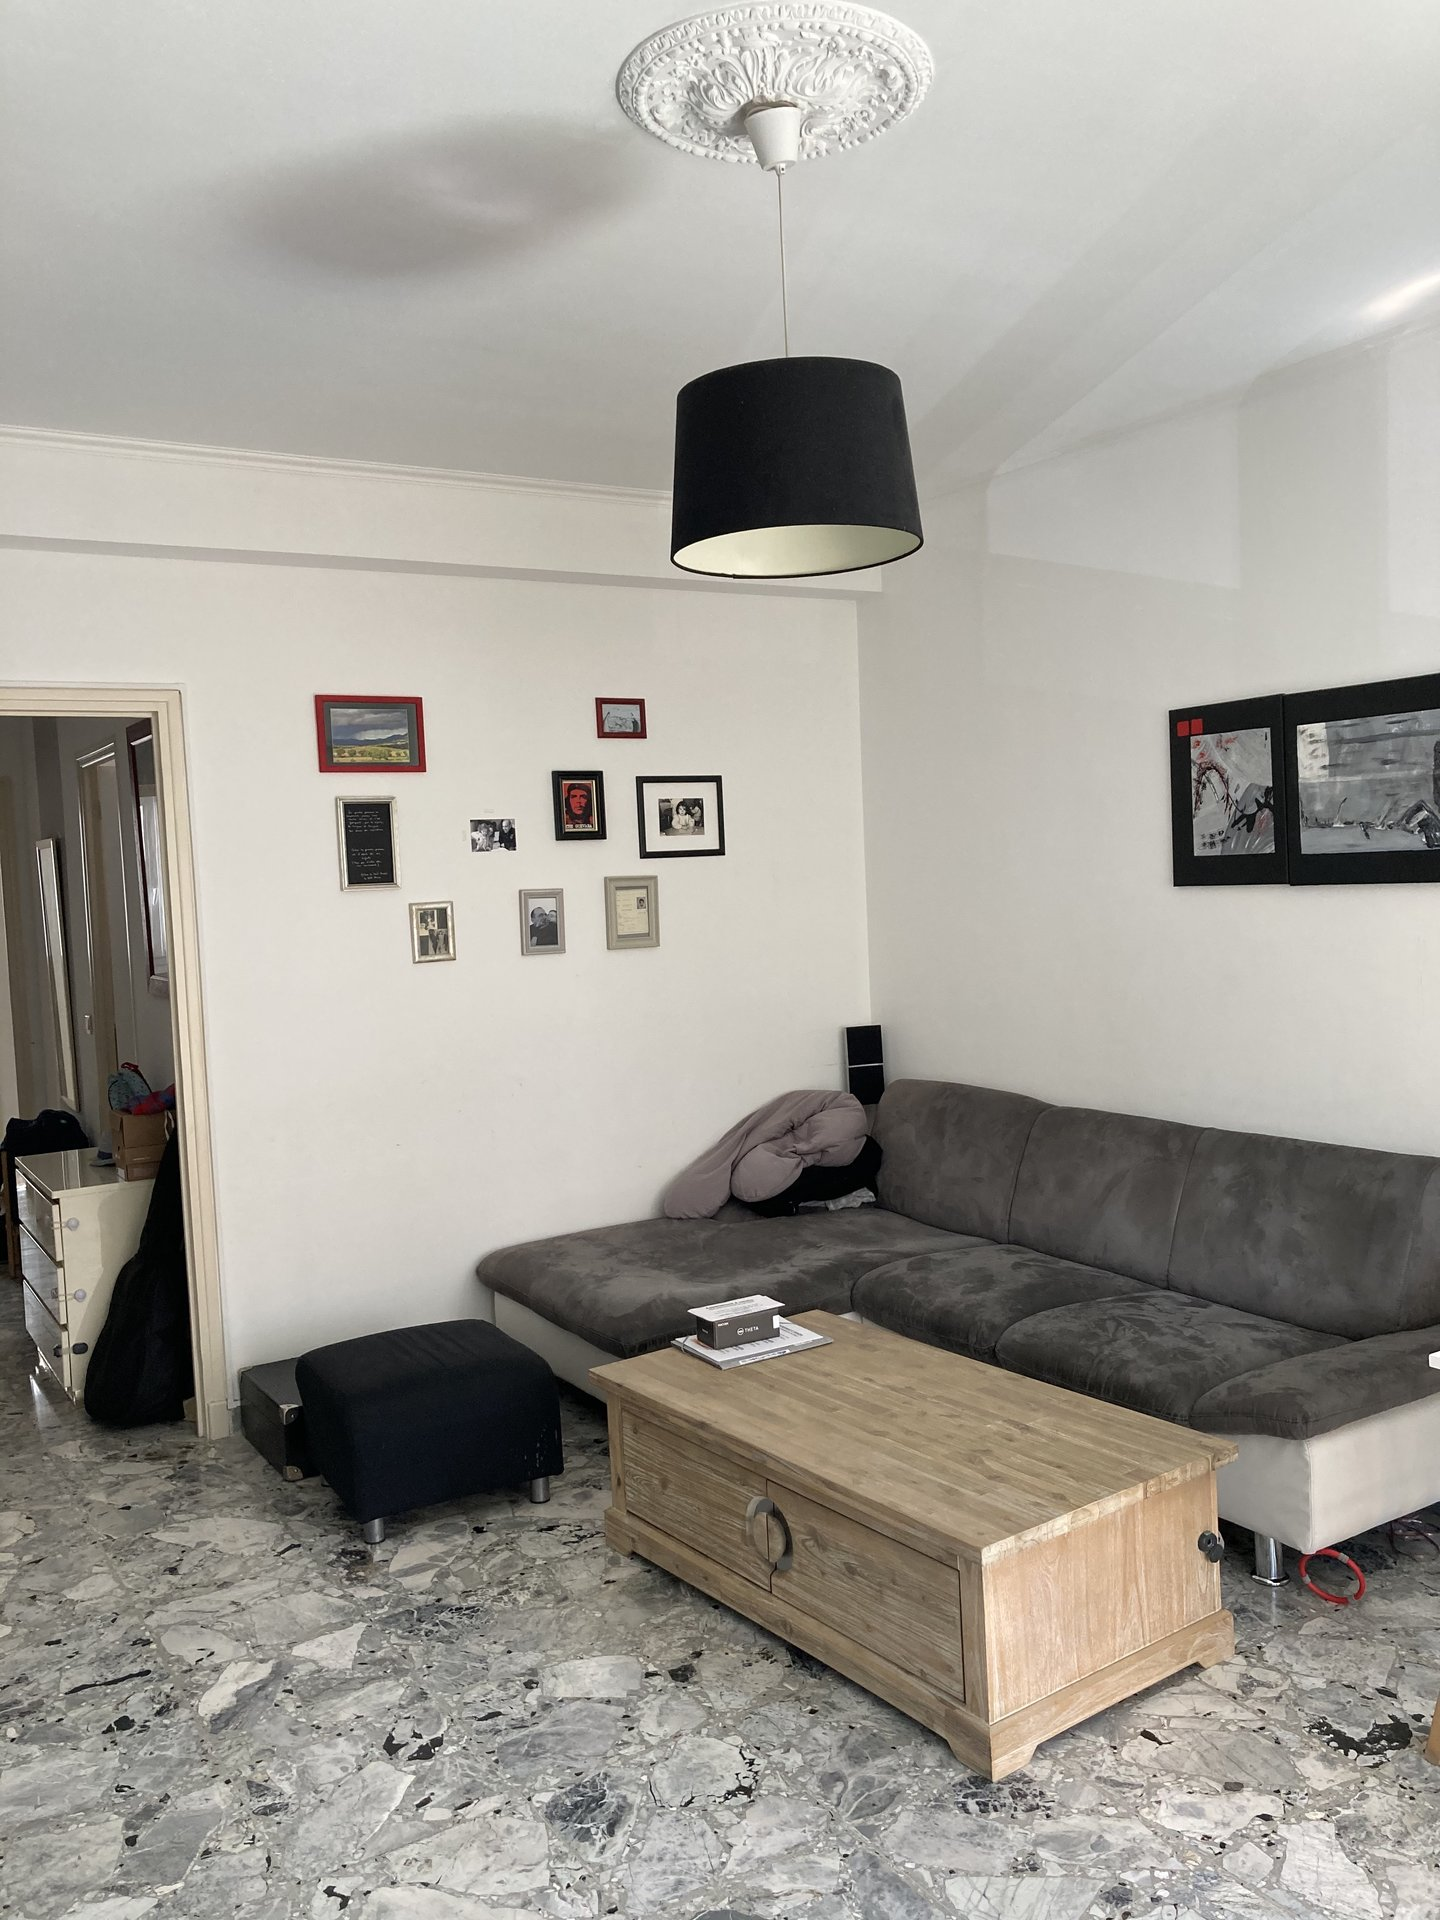 appartement 3 pièces + terrasse / cave / parking sécurisé privatif